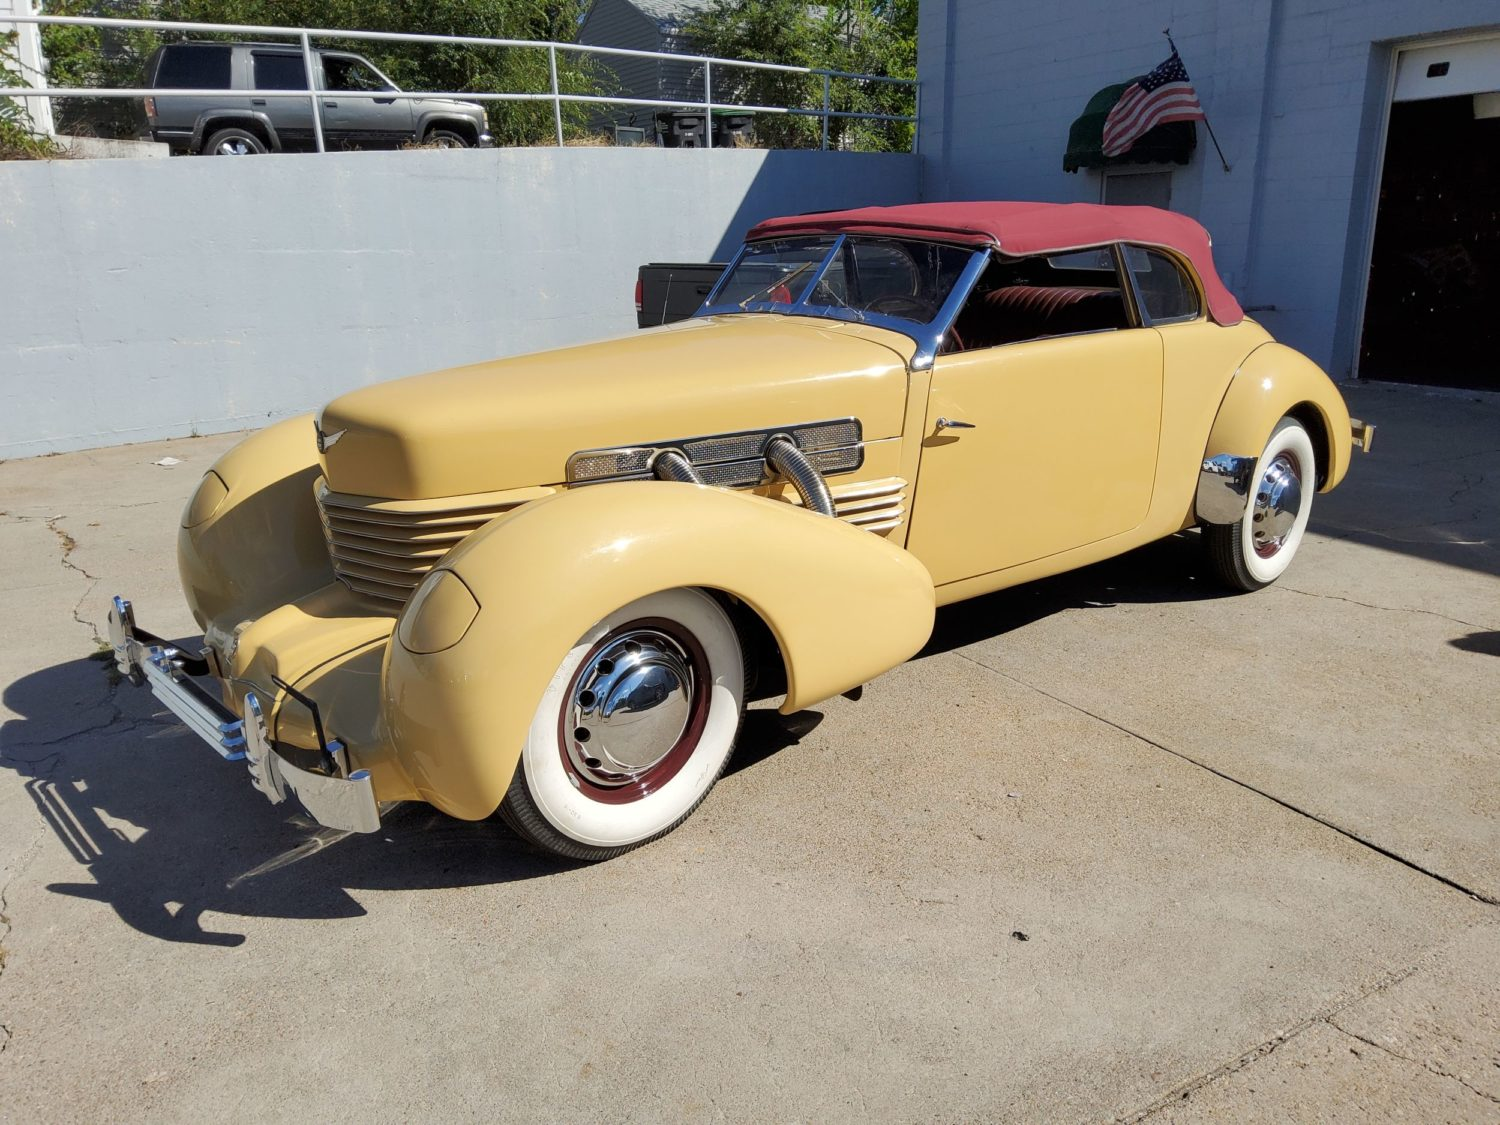 ONLINE ONLY! 1936 Cord, 1959 Cadillac & More Vintage Classic Cars! The John Agee Collection! - image 1